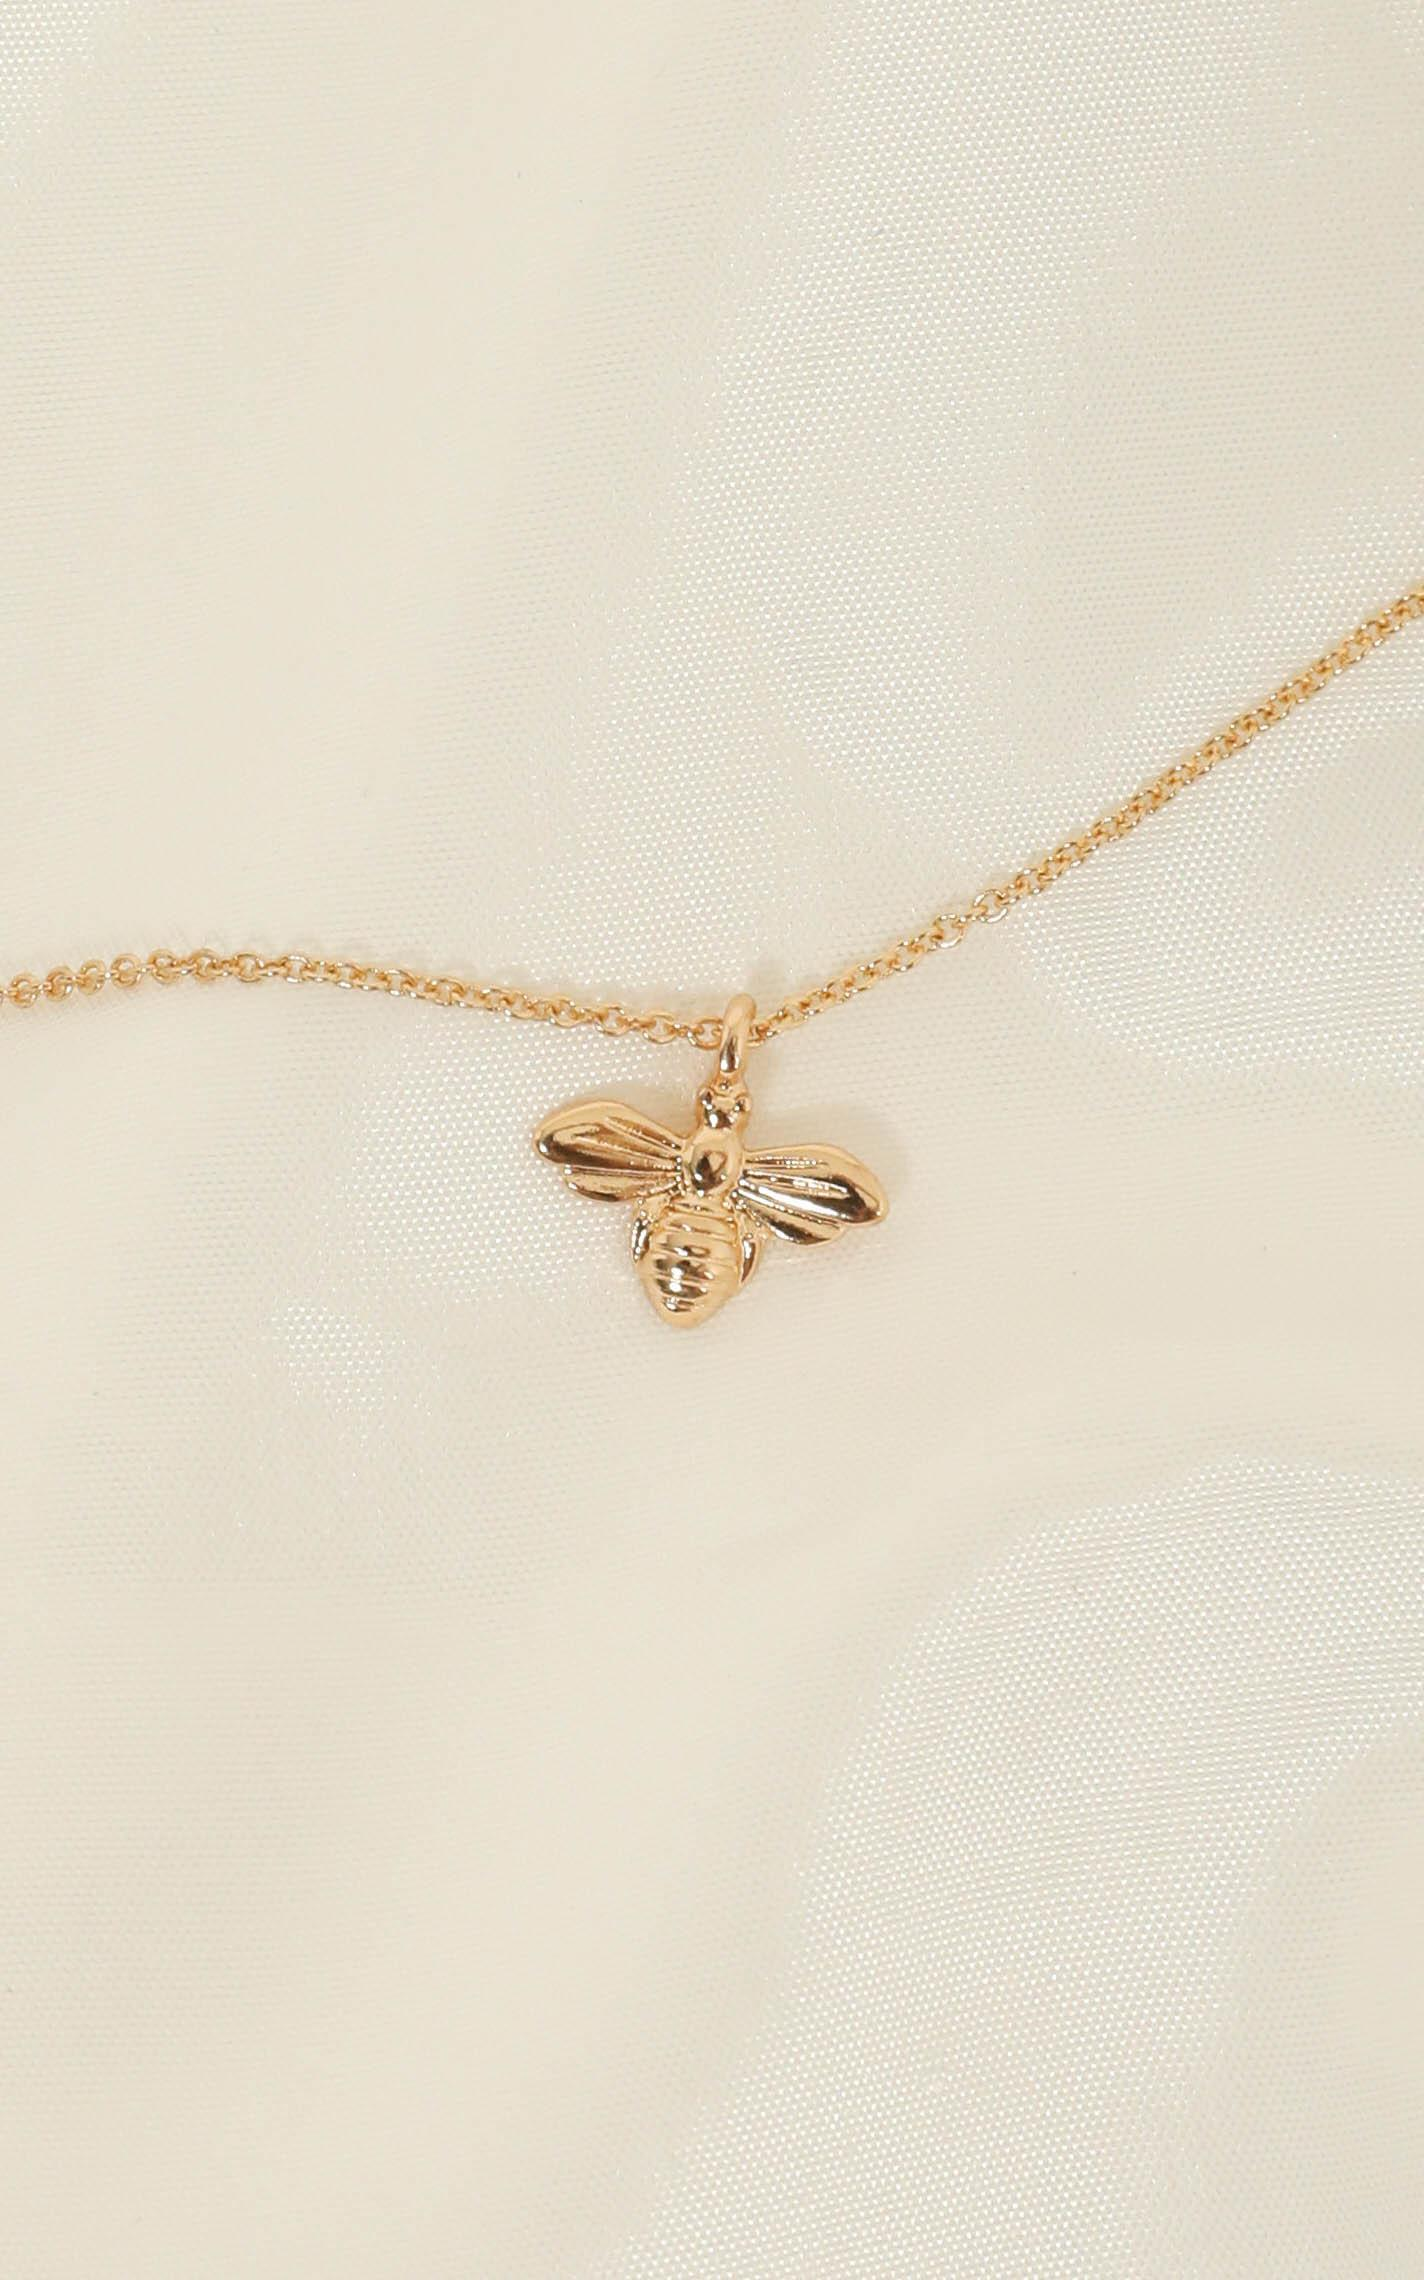 Honey Bee Necklace in Gold, , hi-res image number null